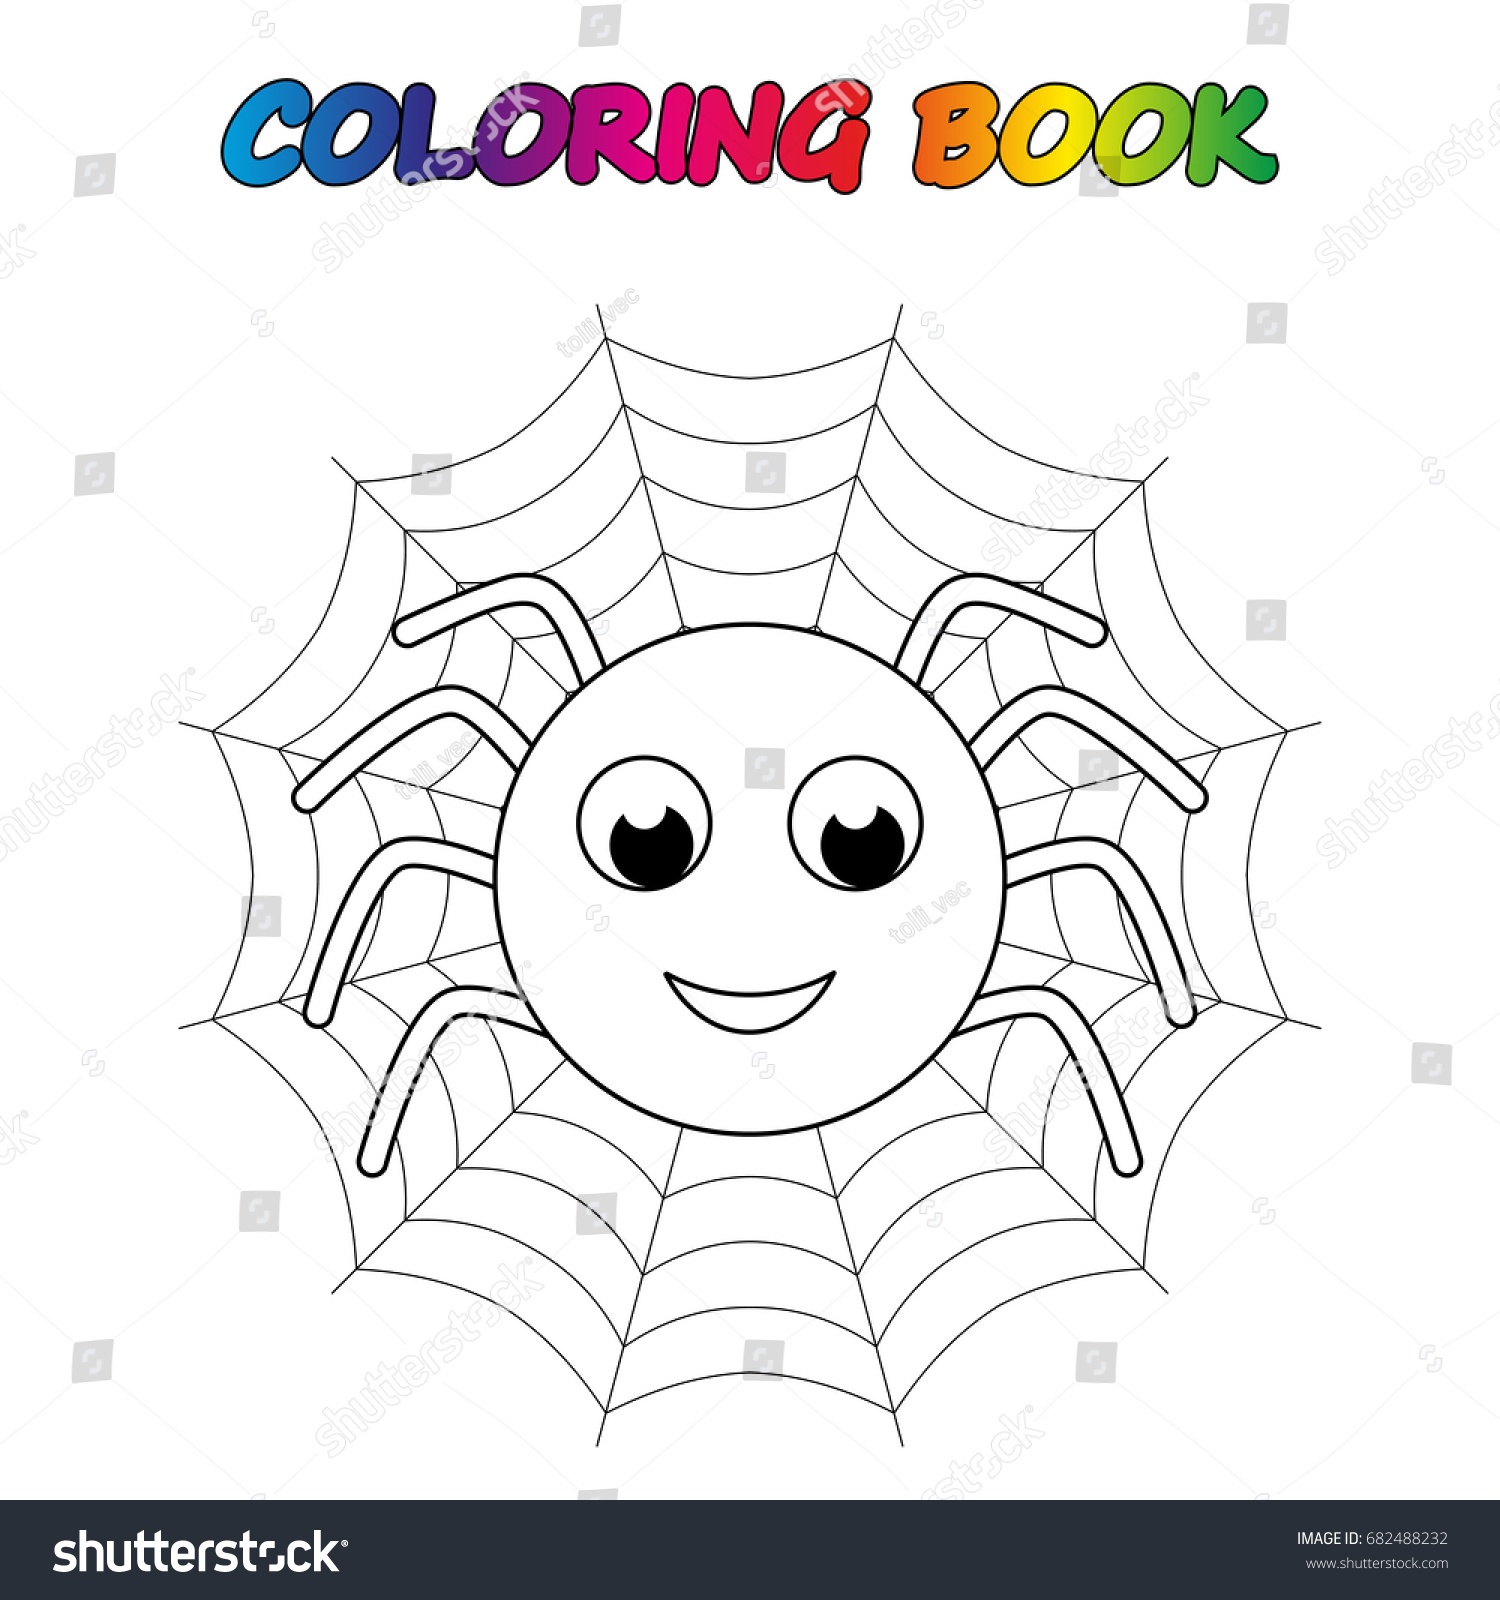 spider coloring book coloring page to educate preschool kids game for preschool kids - Spider Coloring Book